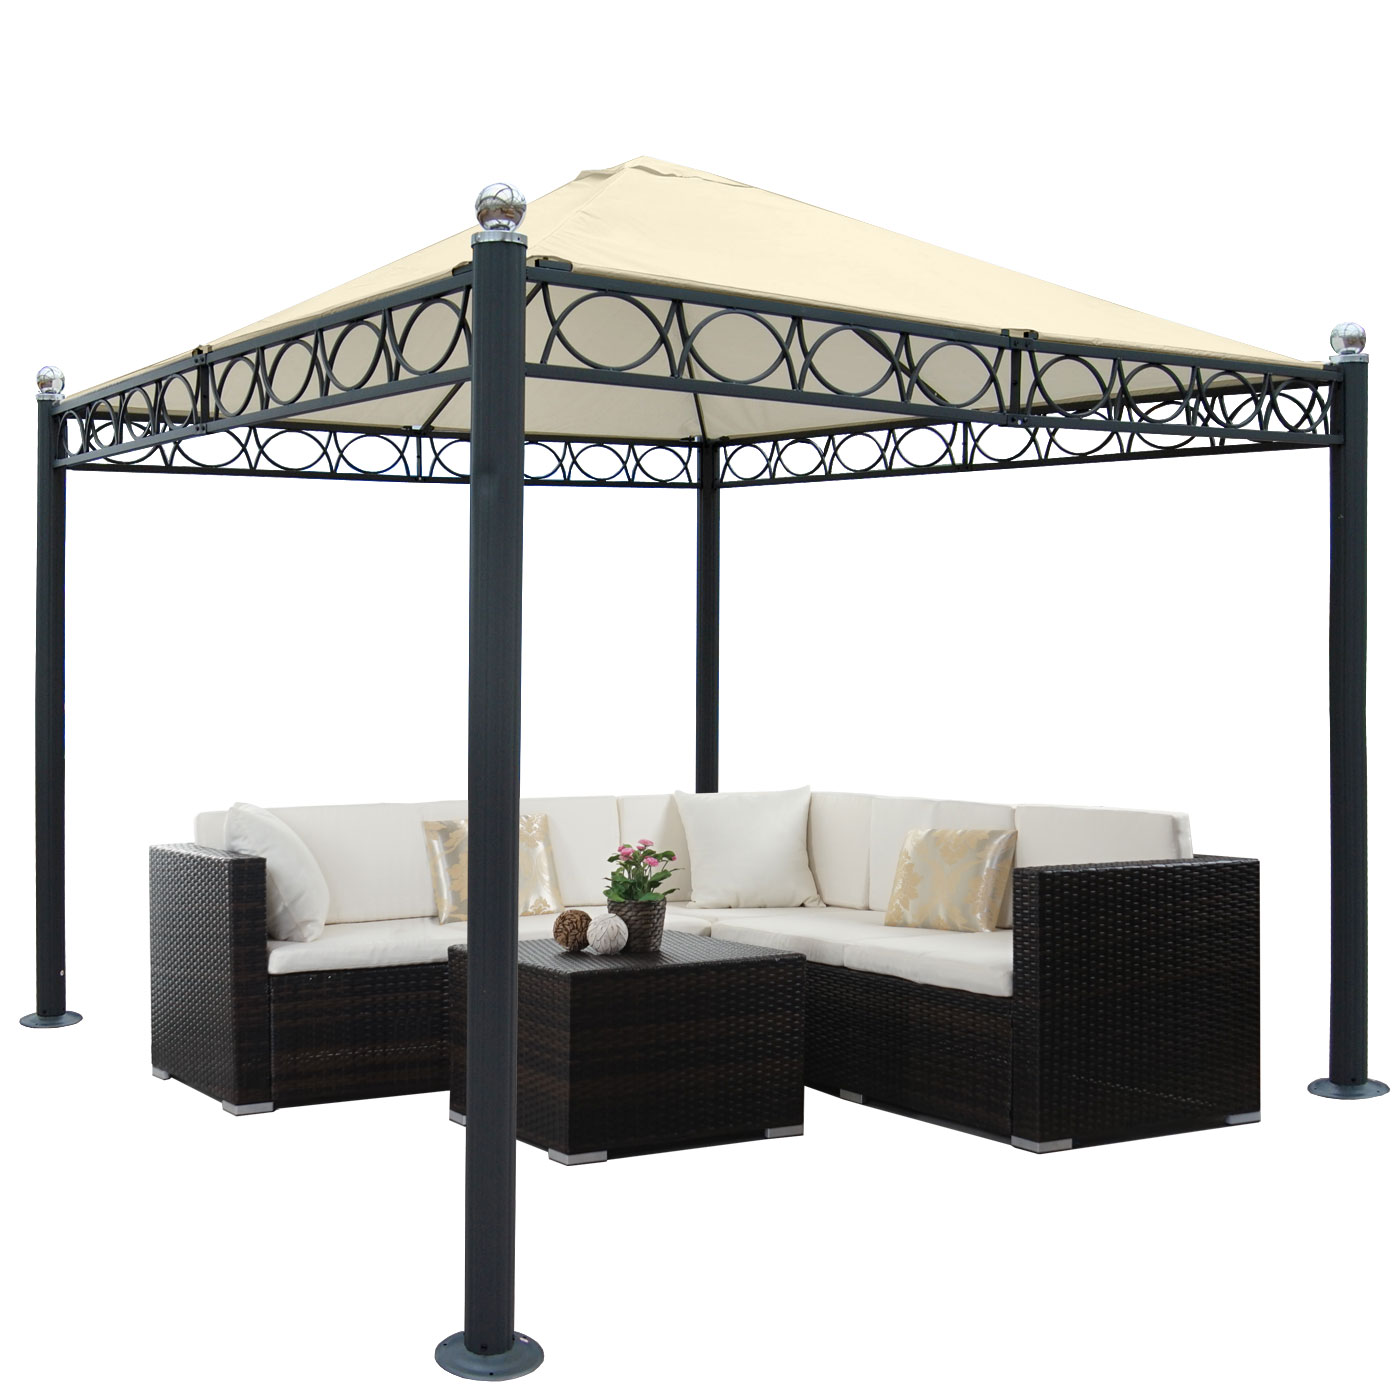 pergola belagua garten pavillon stabiles 10cm luxus alu. Black Bedroom Furniture Sets. Home Design Ideas